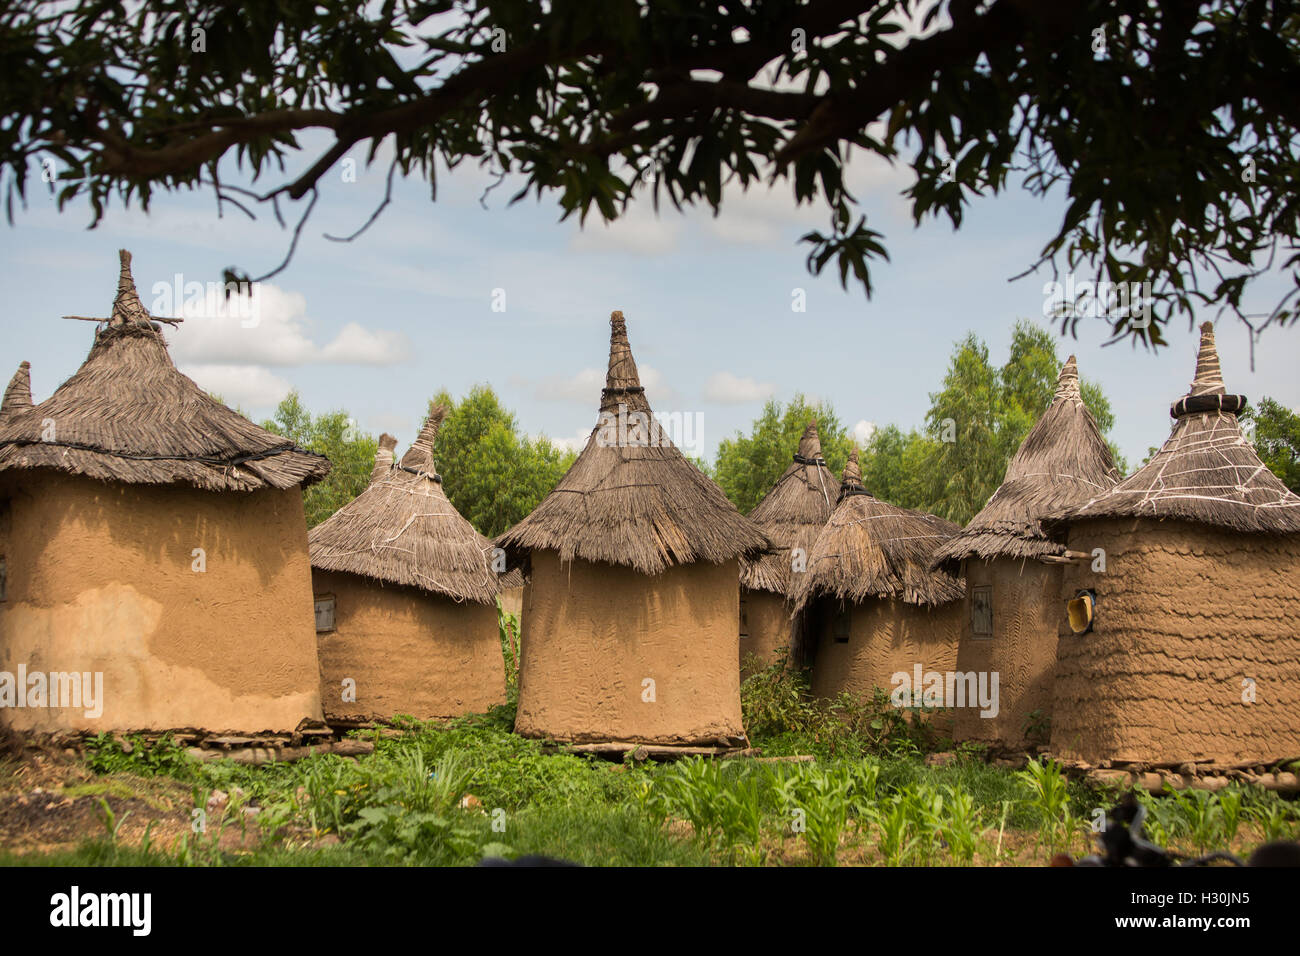 africa mud huts african architecture stock photos & africa mud